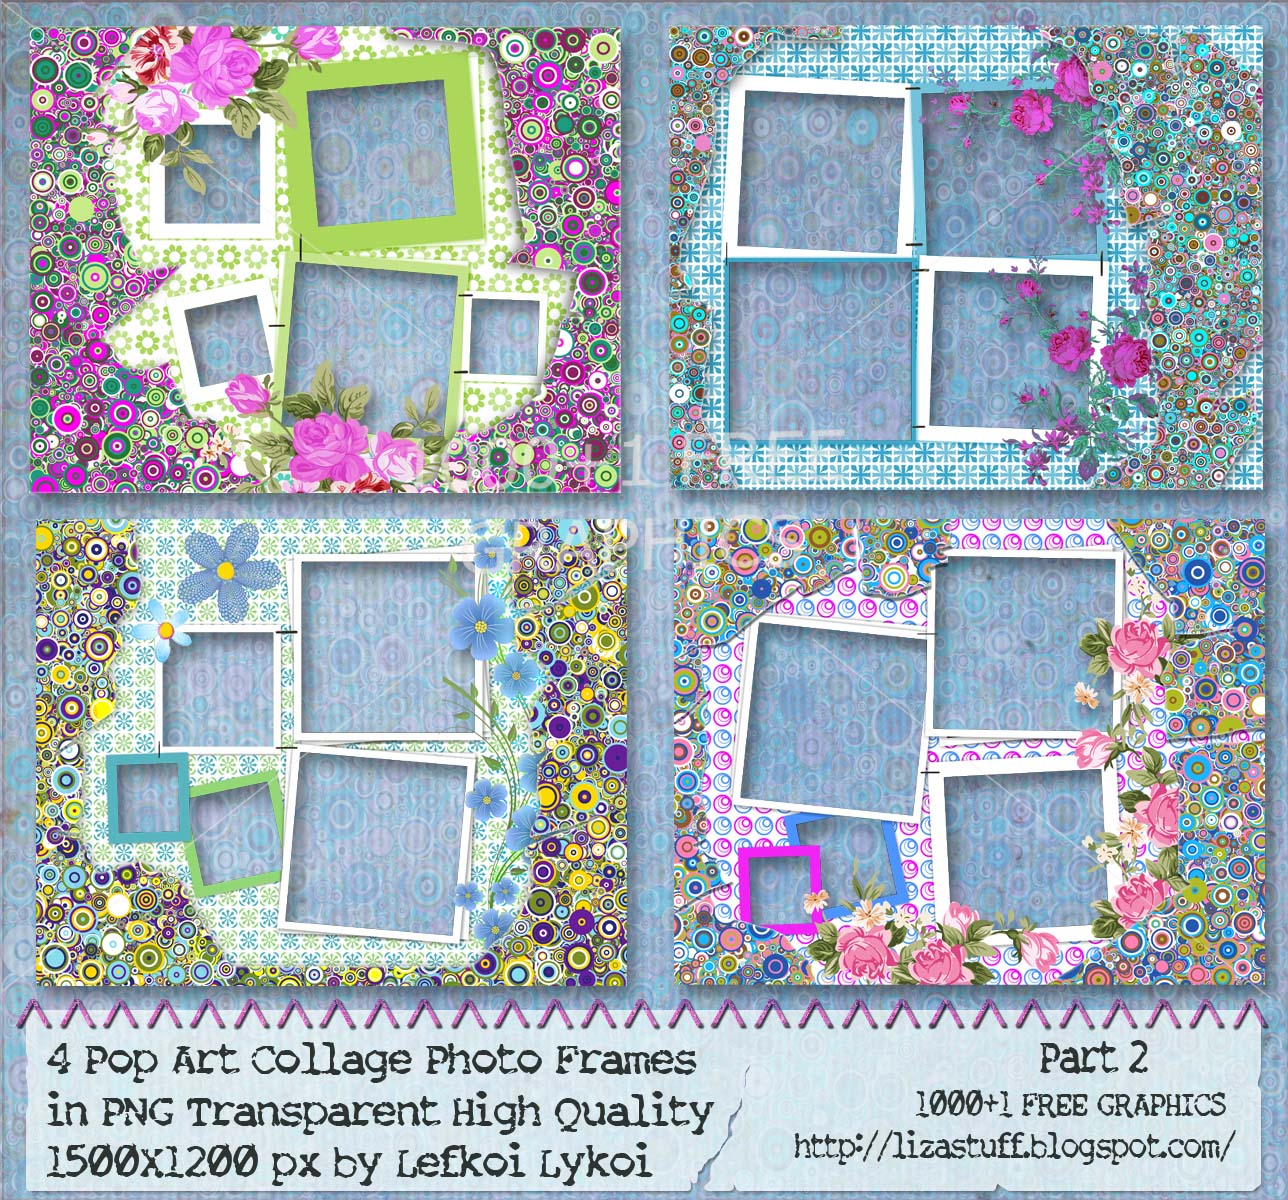 1000 1 Free Graphics 4 Pop Art Collage Photo Frames In